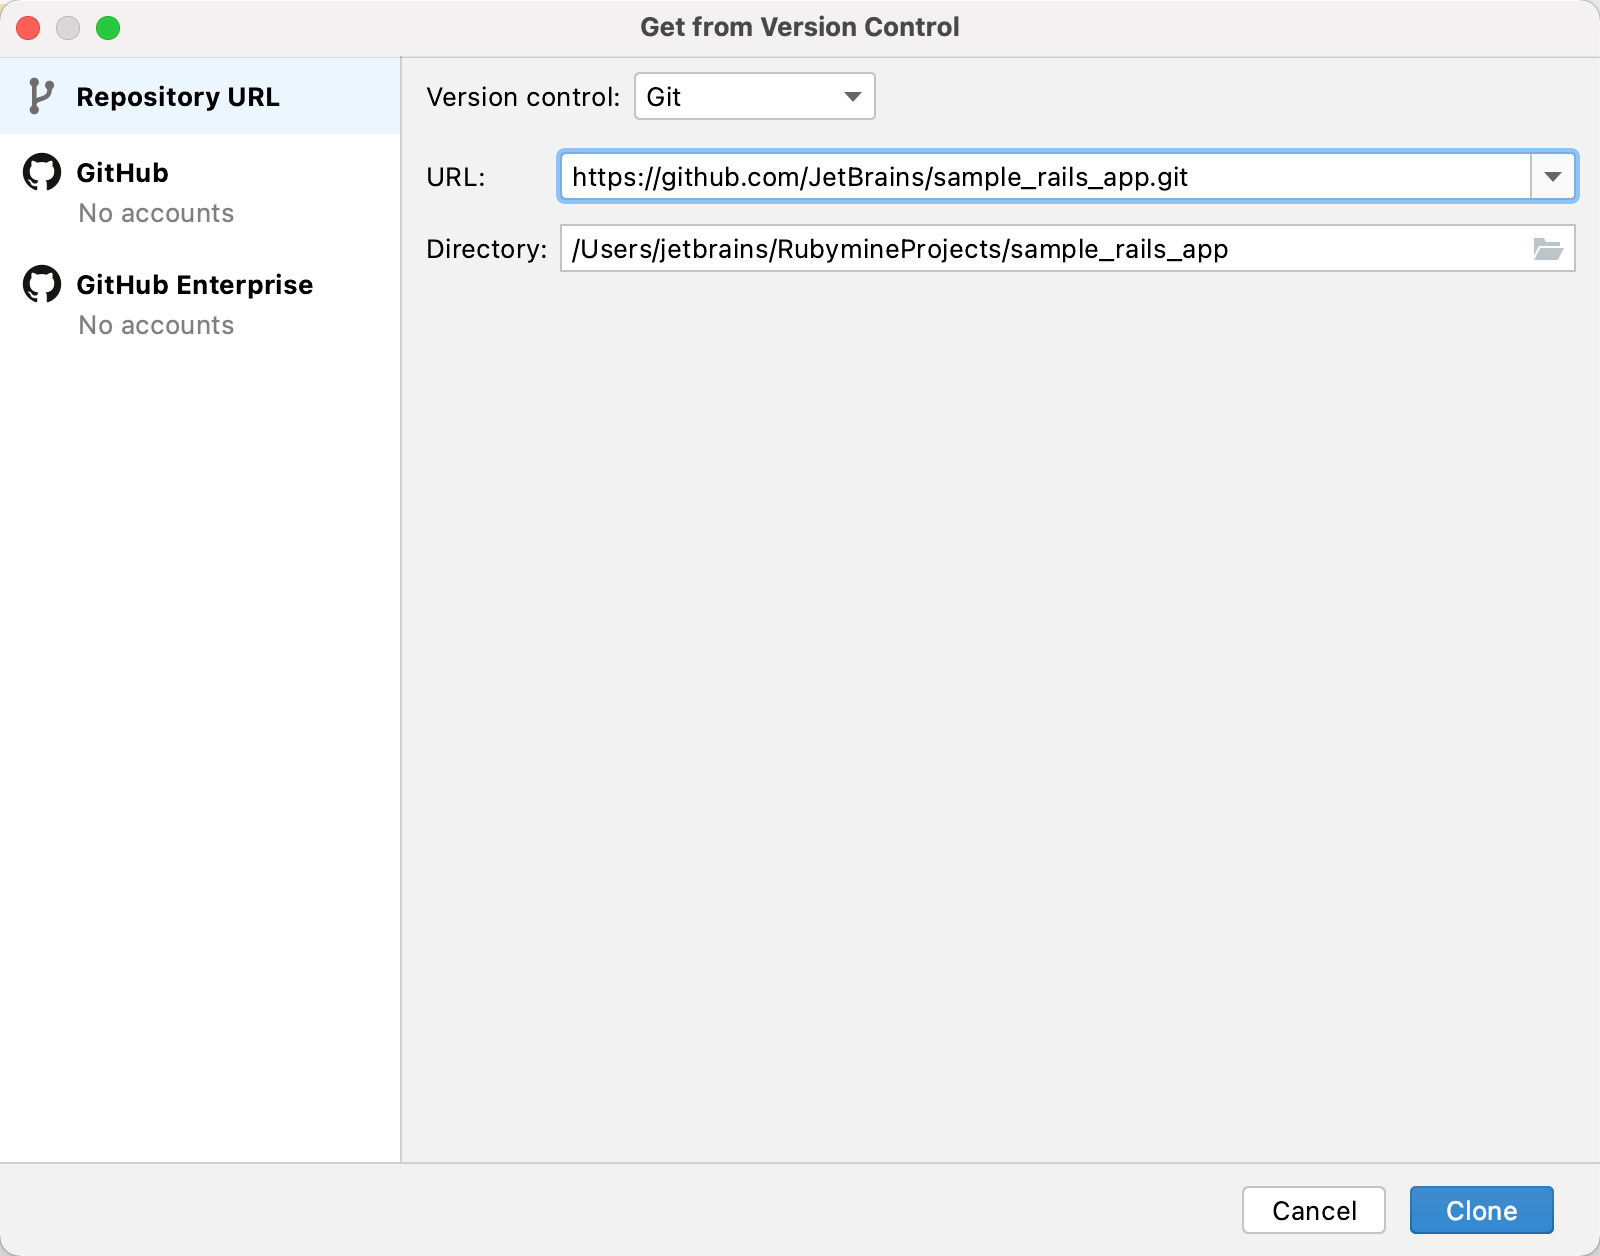 Get from Version Control dialog